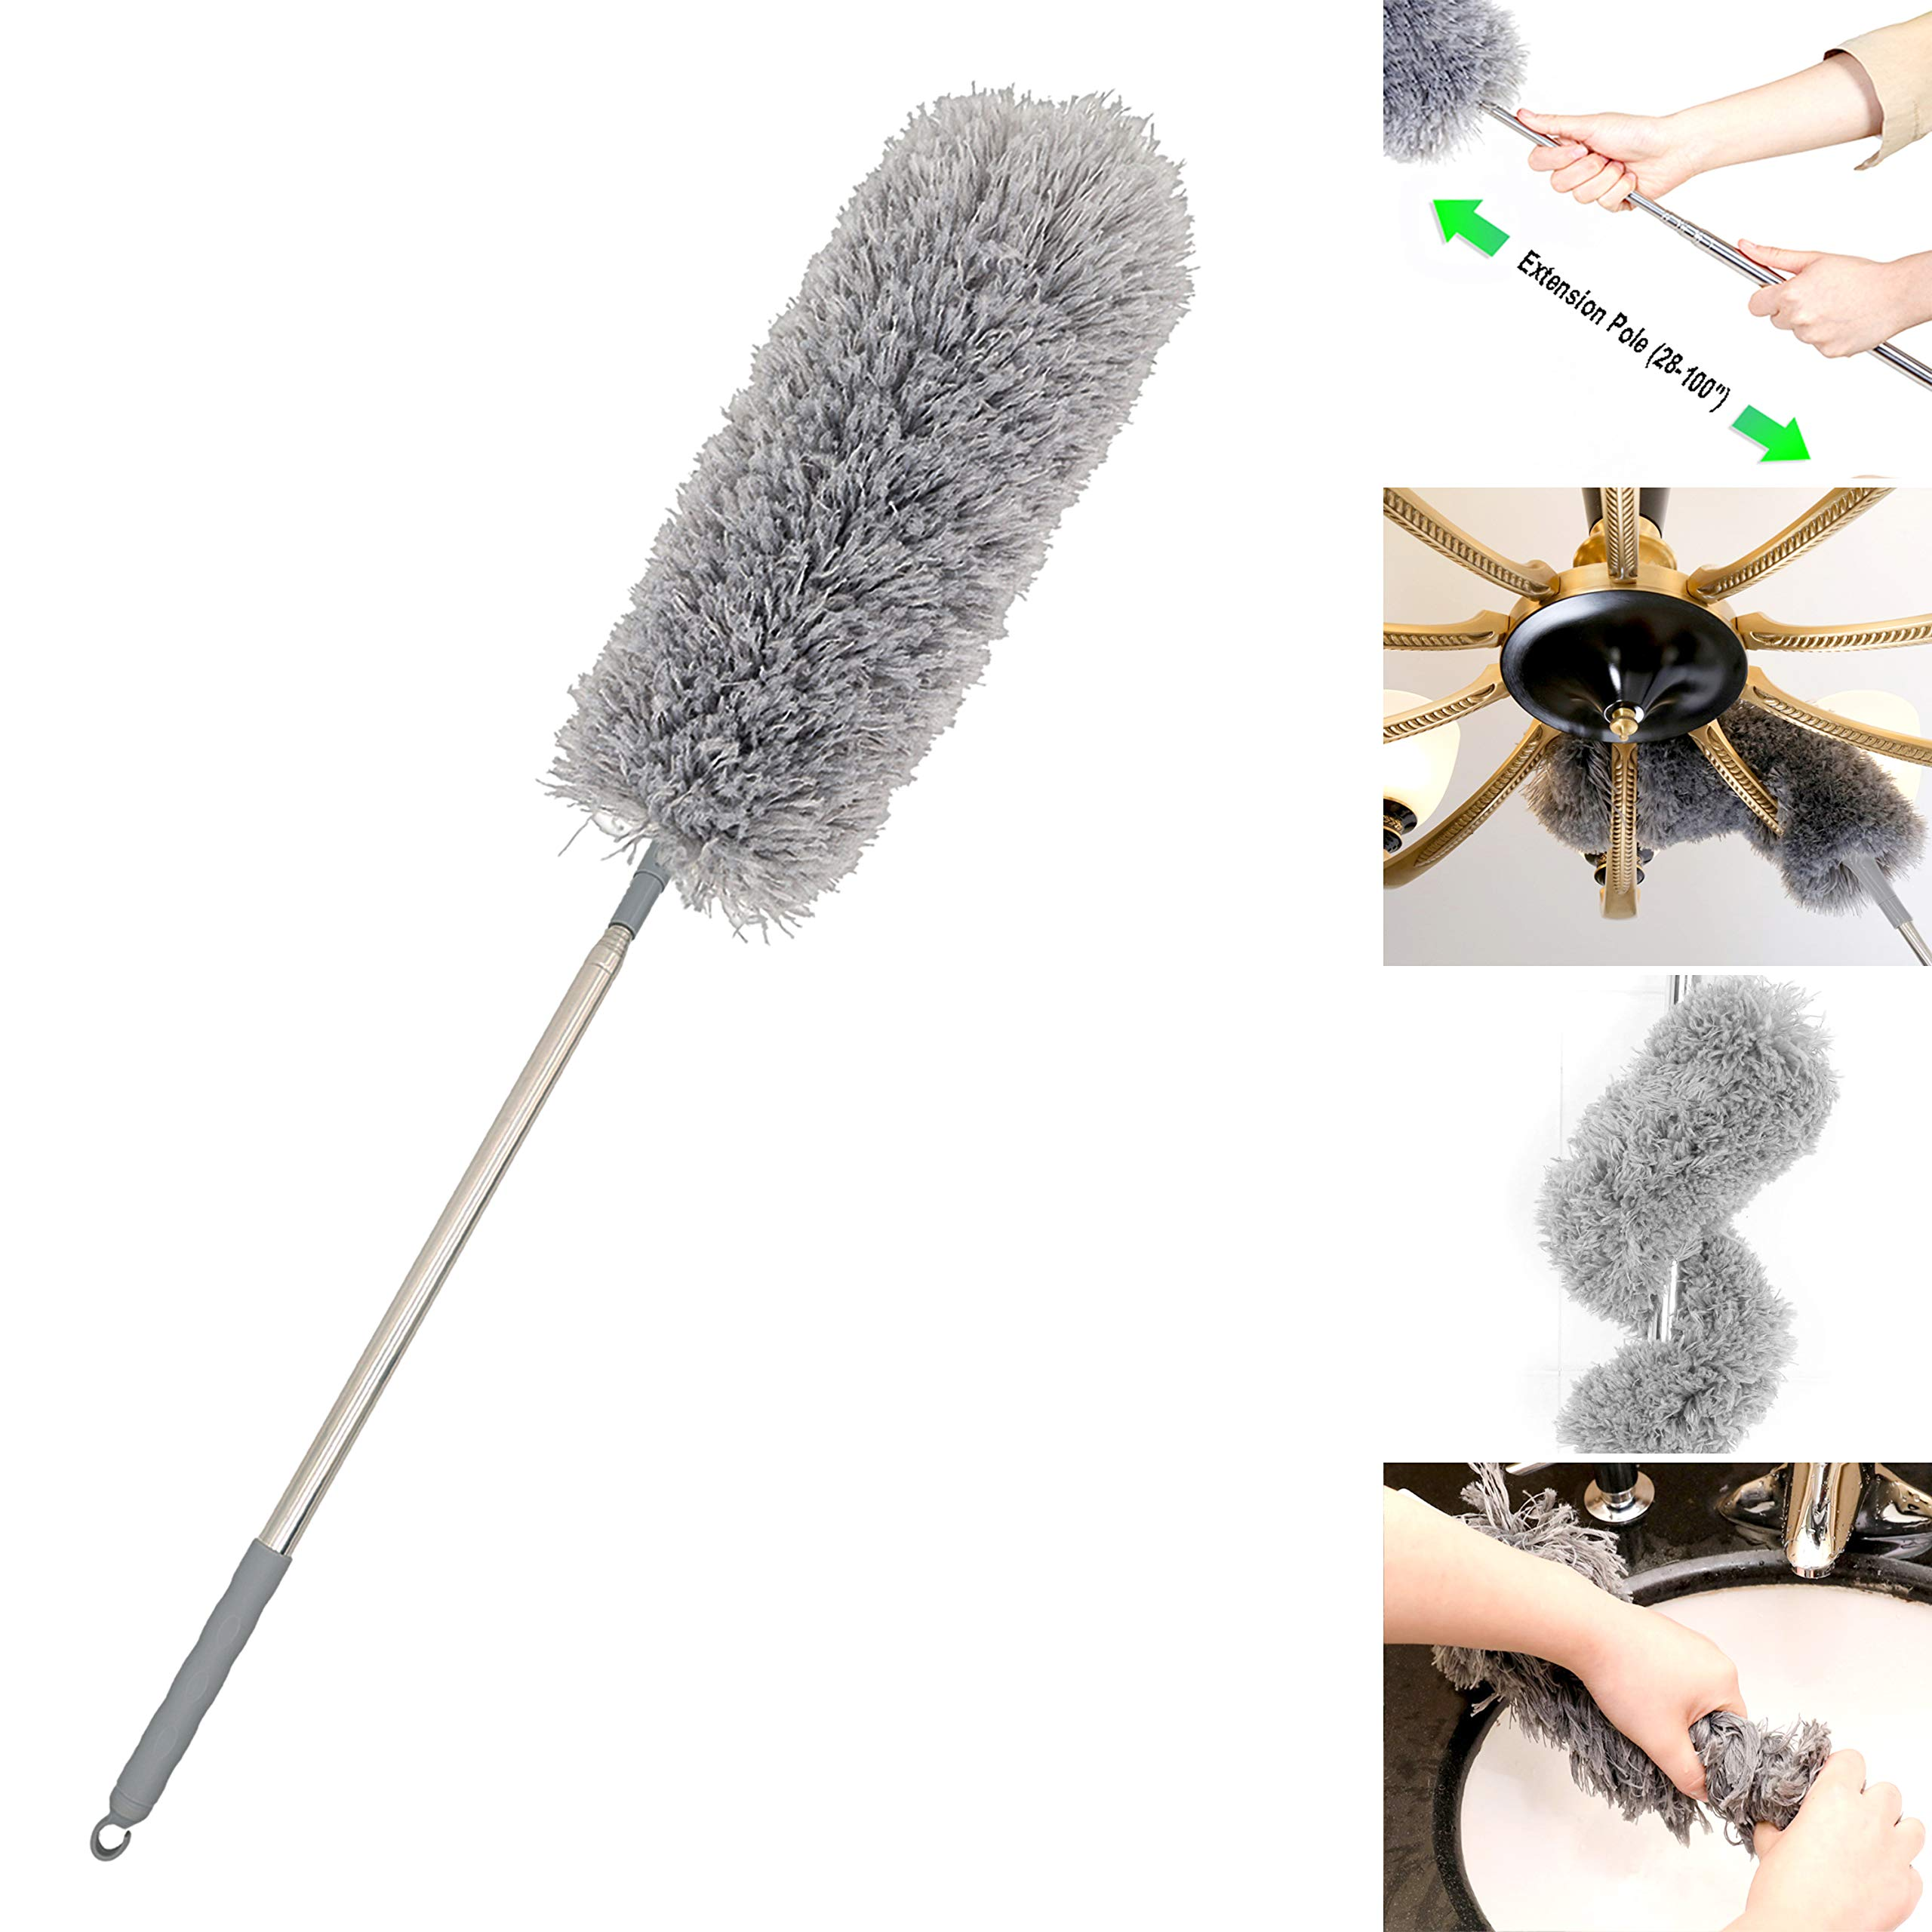 Microfiber Duster Extra Long Telescopic Pole (100'') Scratch-Resistant Cover,Bendable,Washable,Hypoallergenic,Lint Free Feather Dusters for Cleaning Roof,Ceiling Fan,Blinds,Cobwebs,Baseboards by FoVo